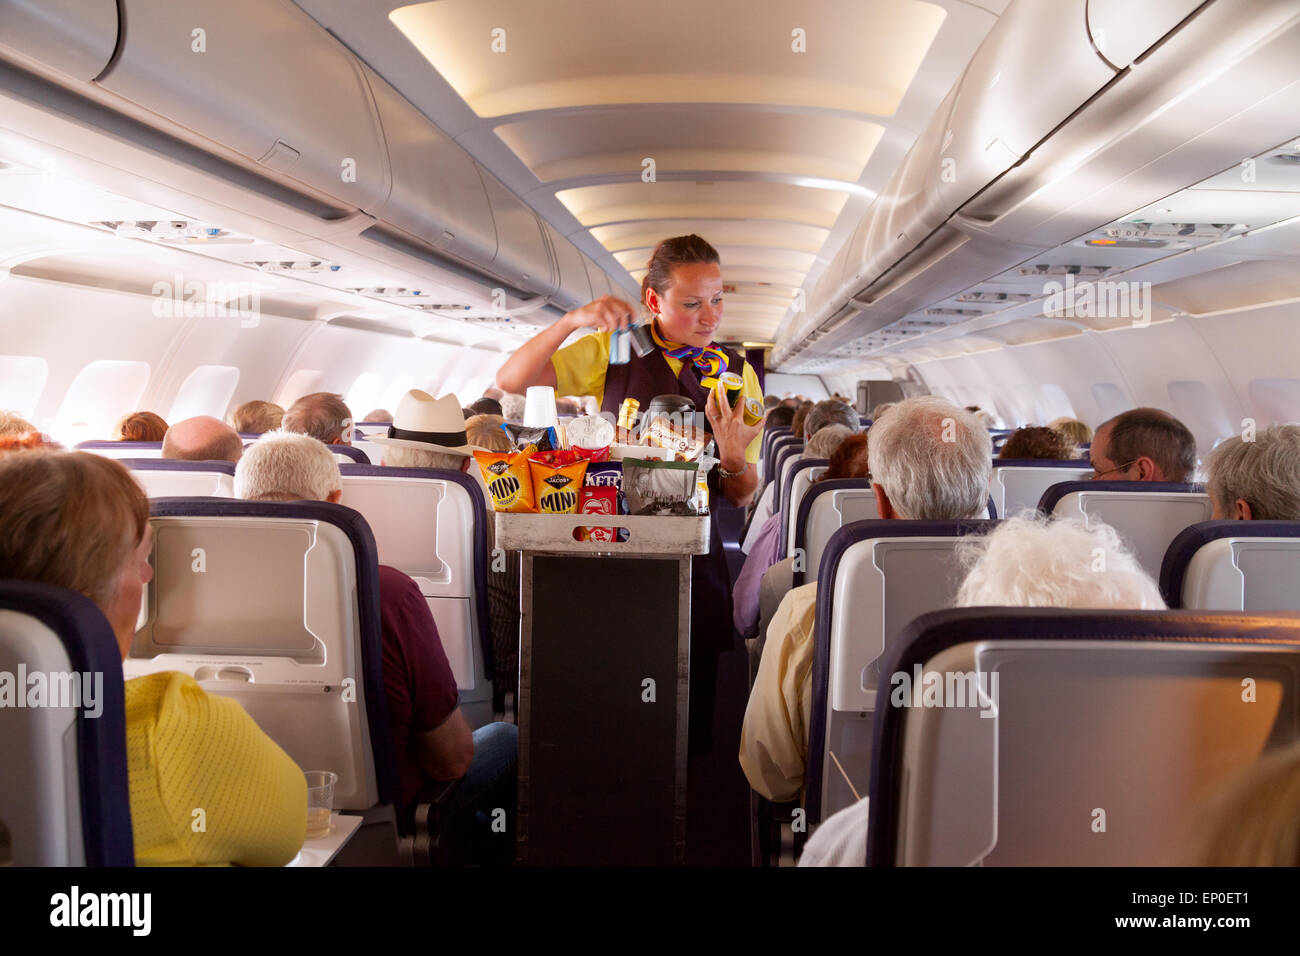 A flight attendant member of the cabin crew serving food on a Monarch Airlines airplane from Madeira to Gatwick - Stock Image